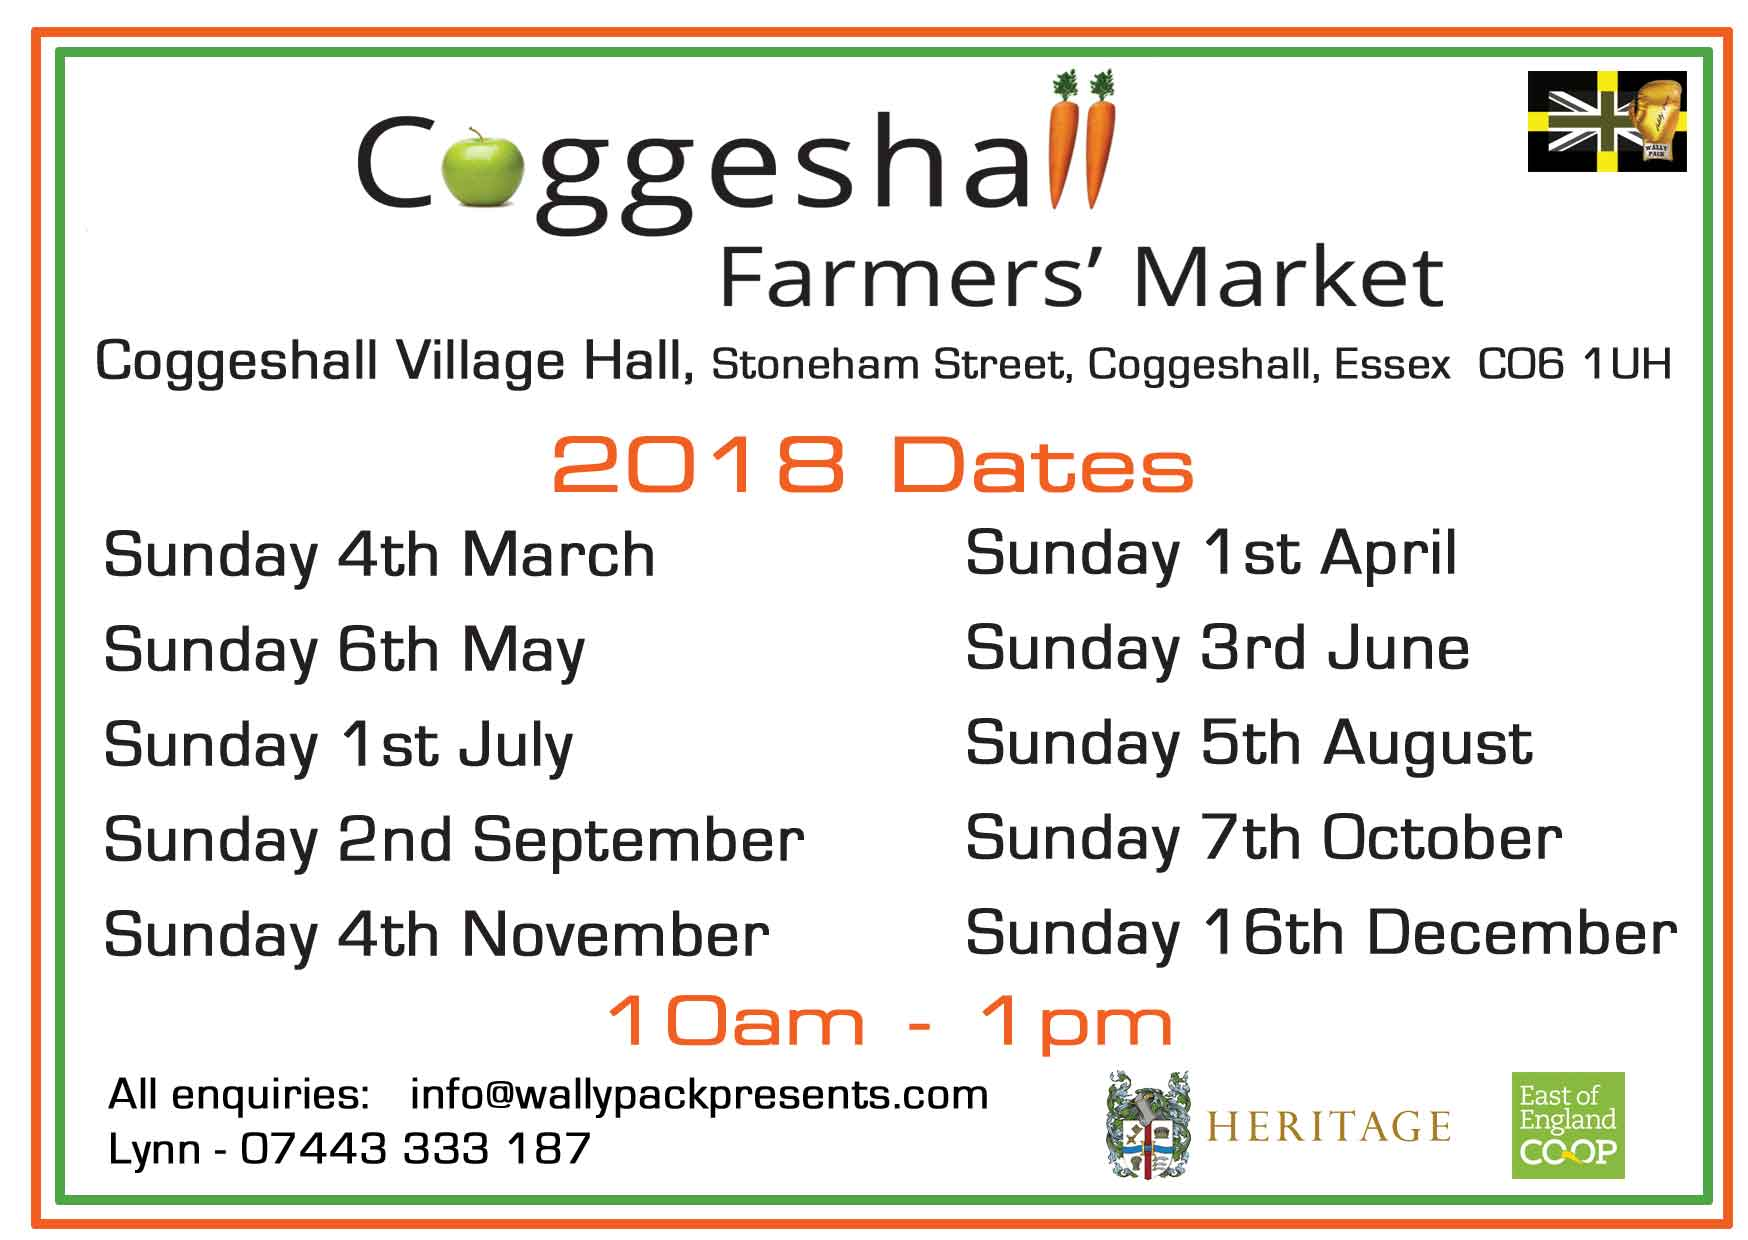 Coggeshall Farmers Market